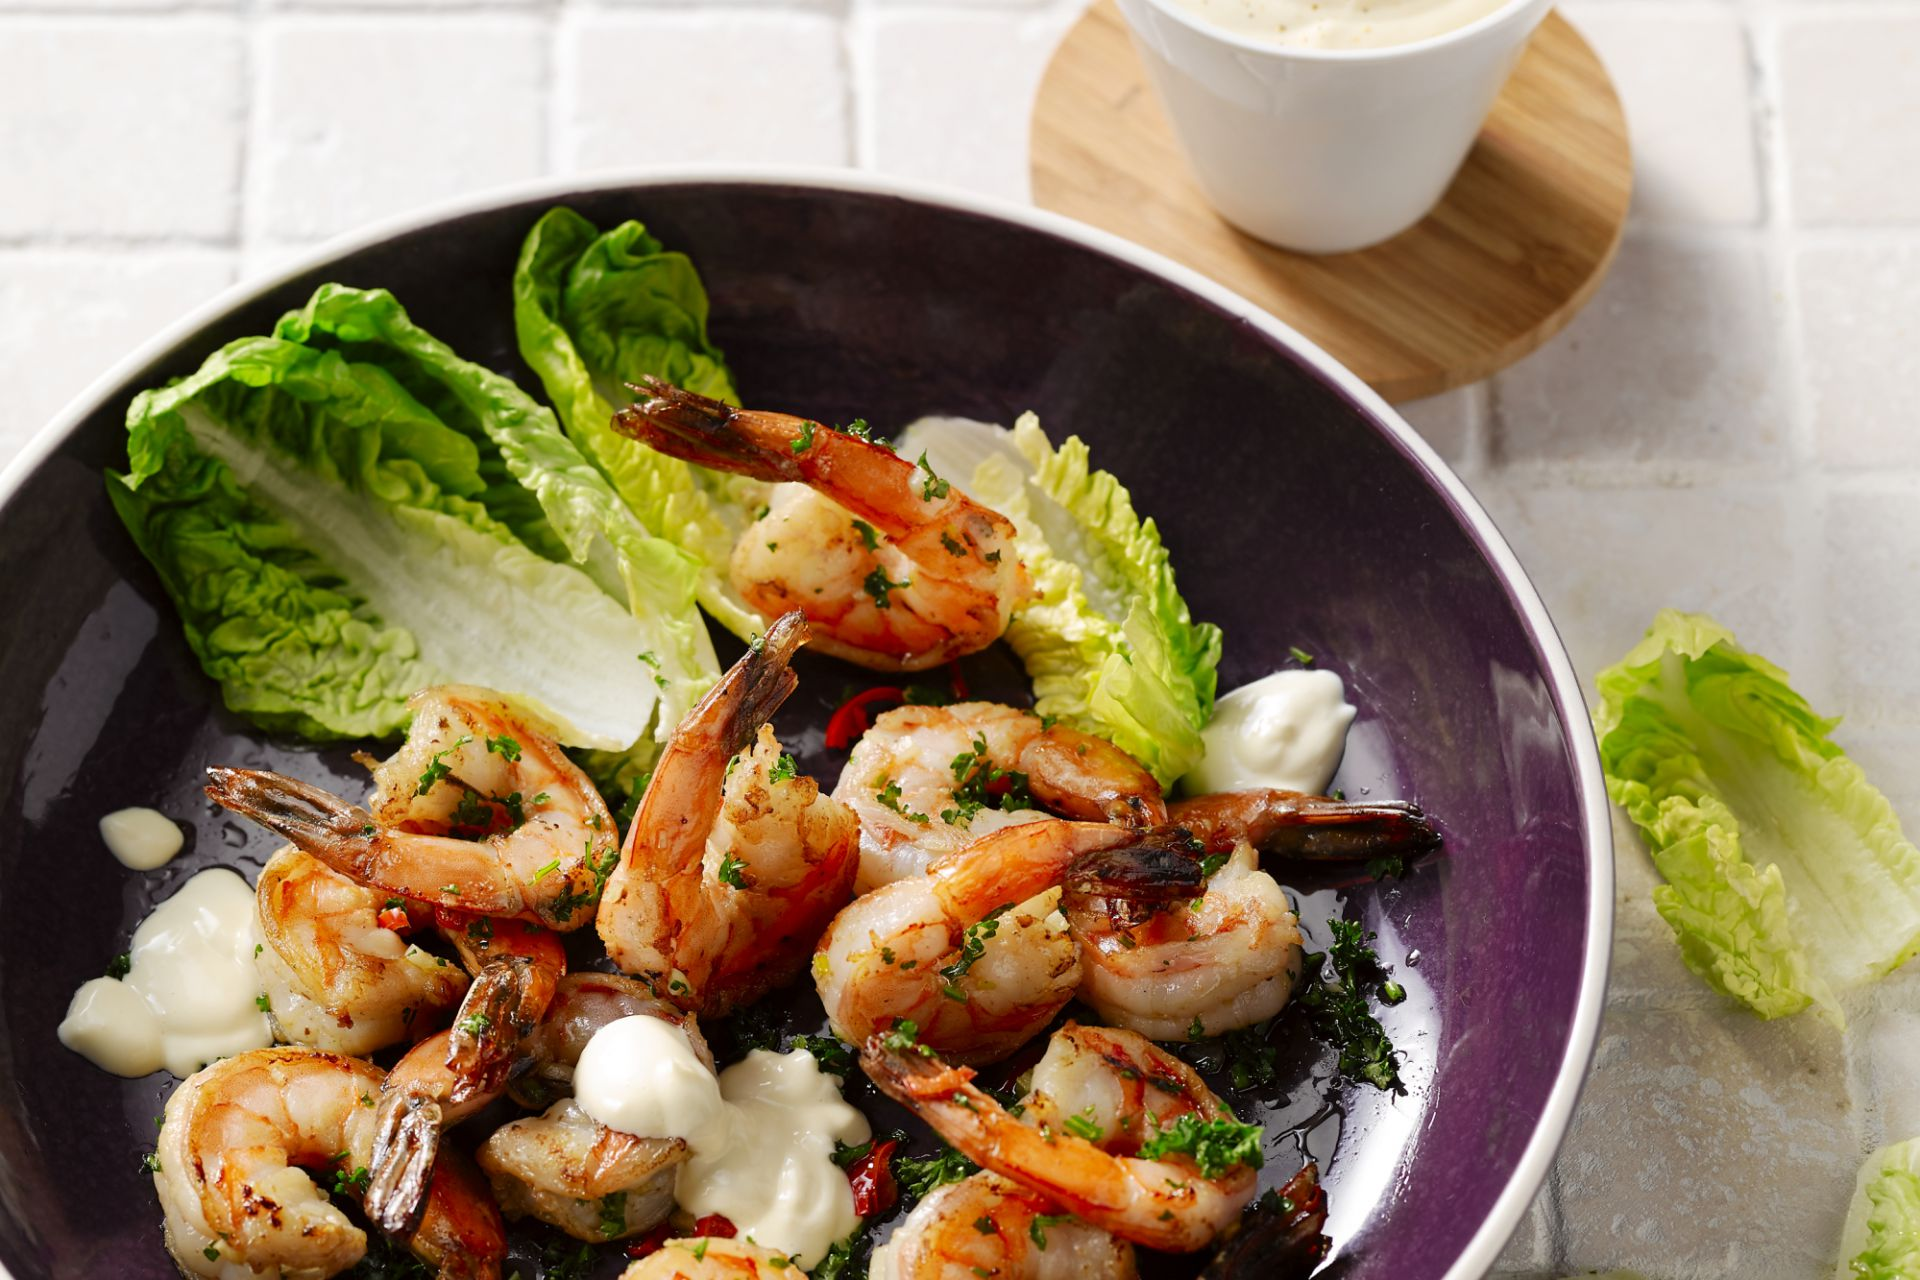 Grote scampi's met aioli